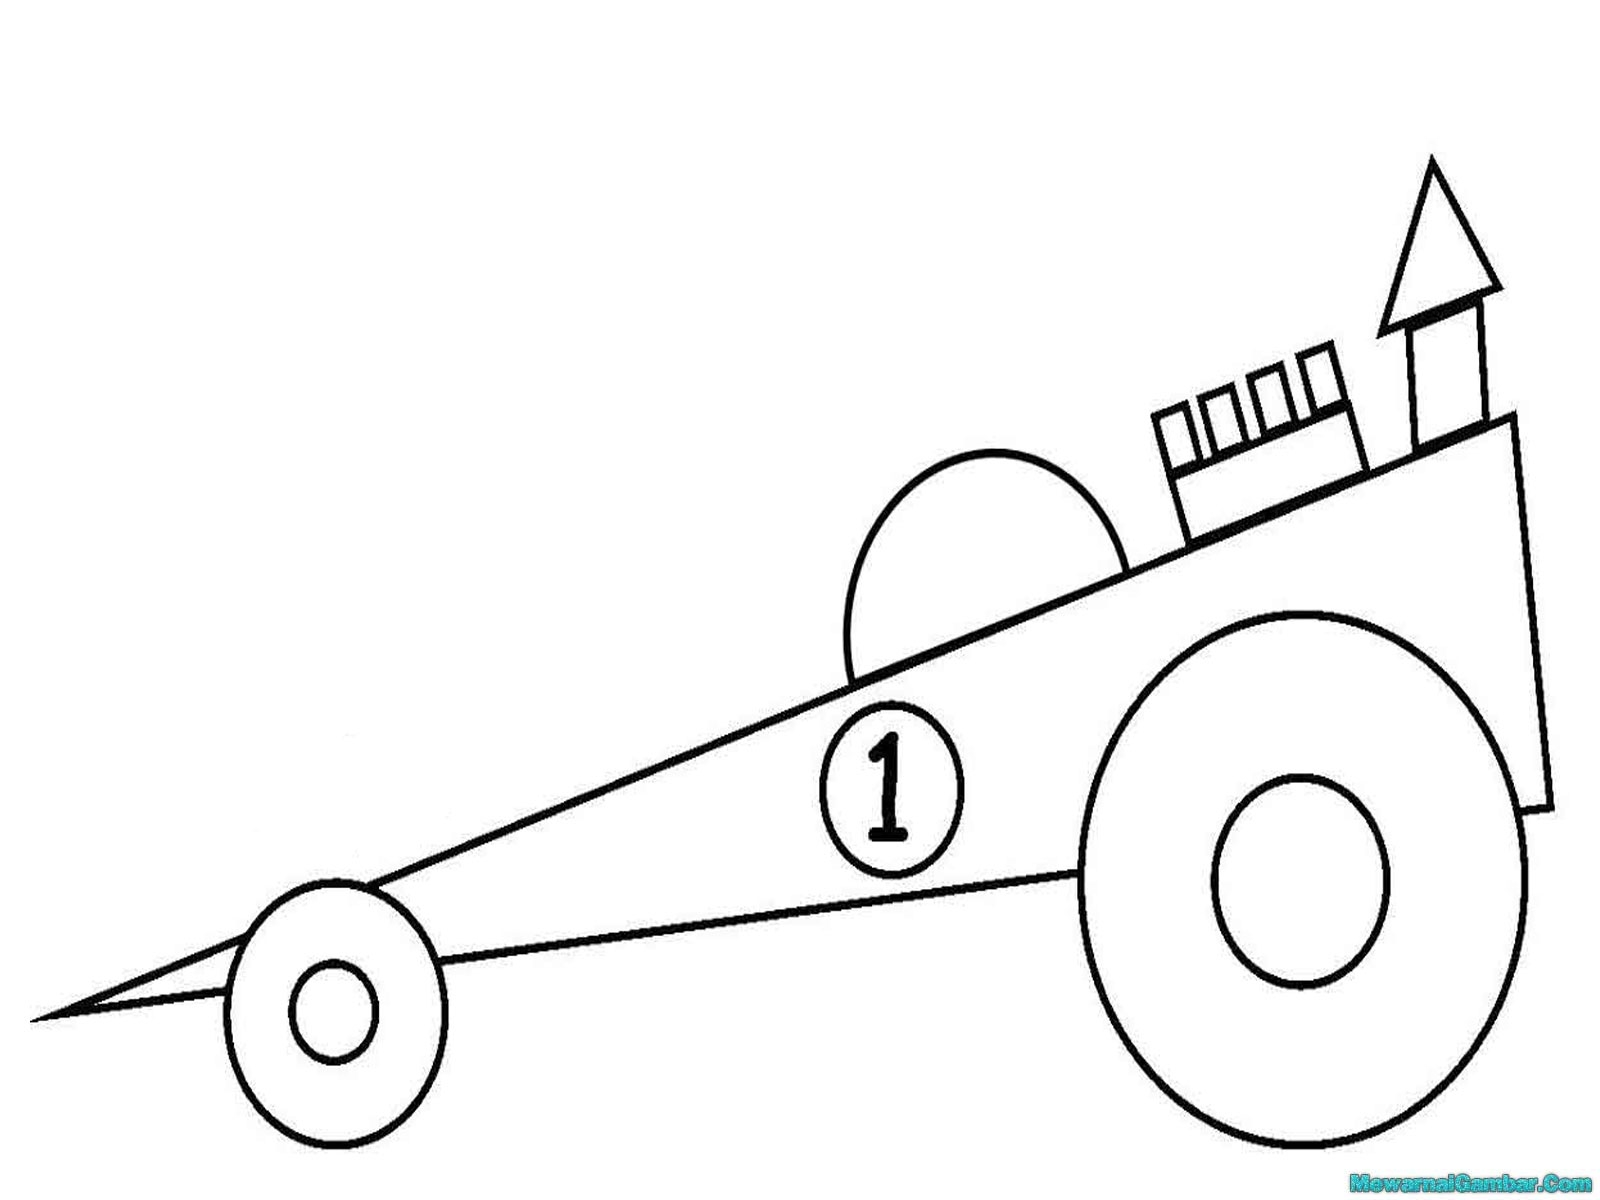 Basic Car Coloring Pages : Free coloring pages of basic car